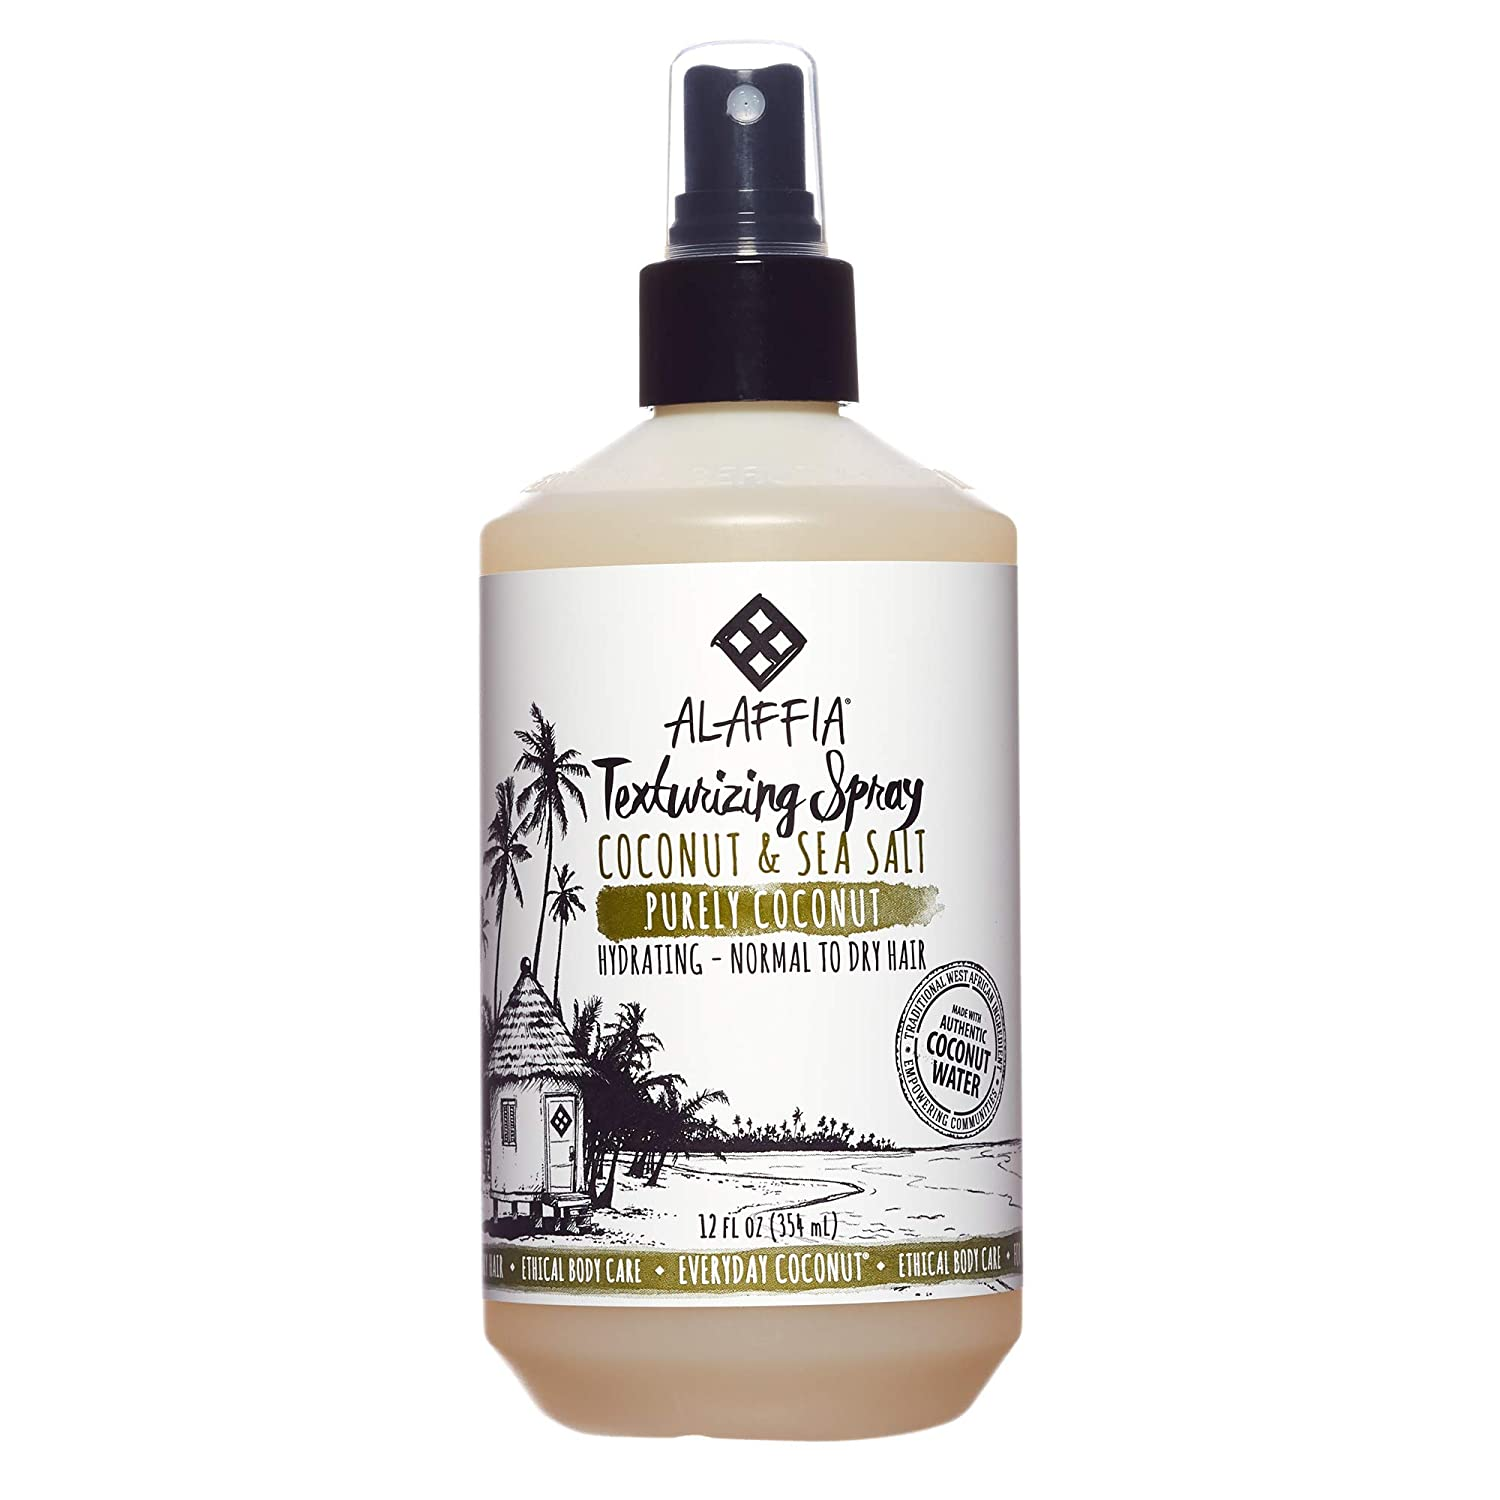 Alaffia - Everyday Coconut Texture Spray Volumizing Sea Salt - 12 oz.